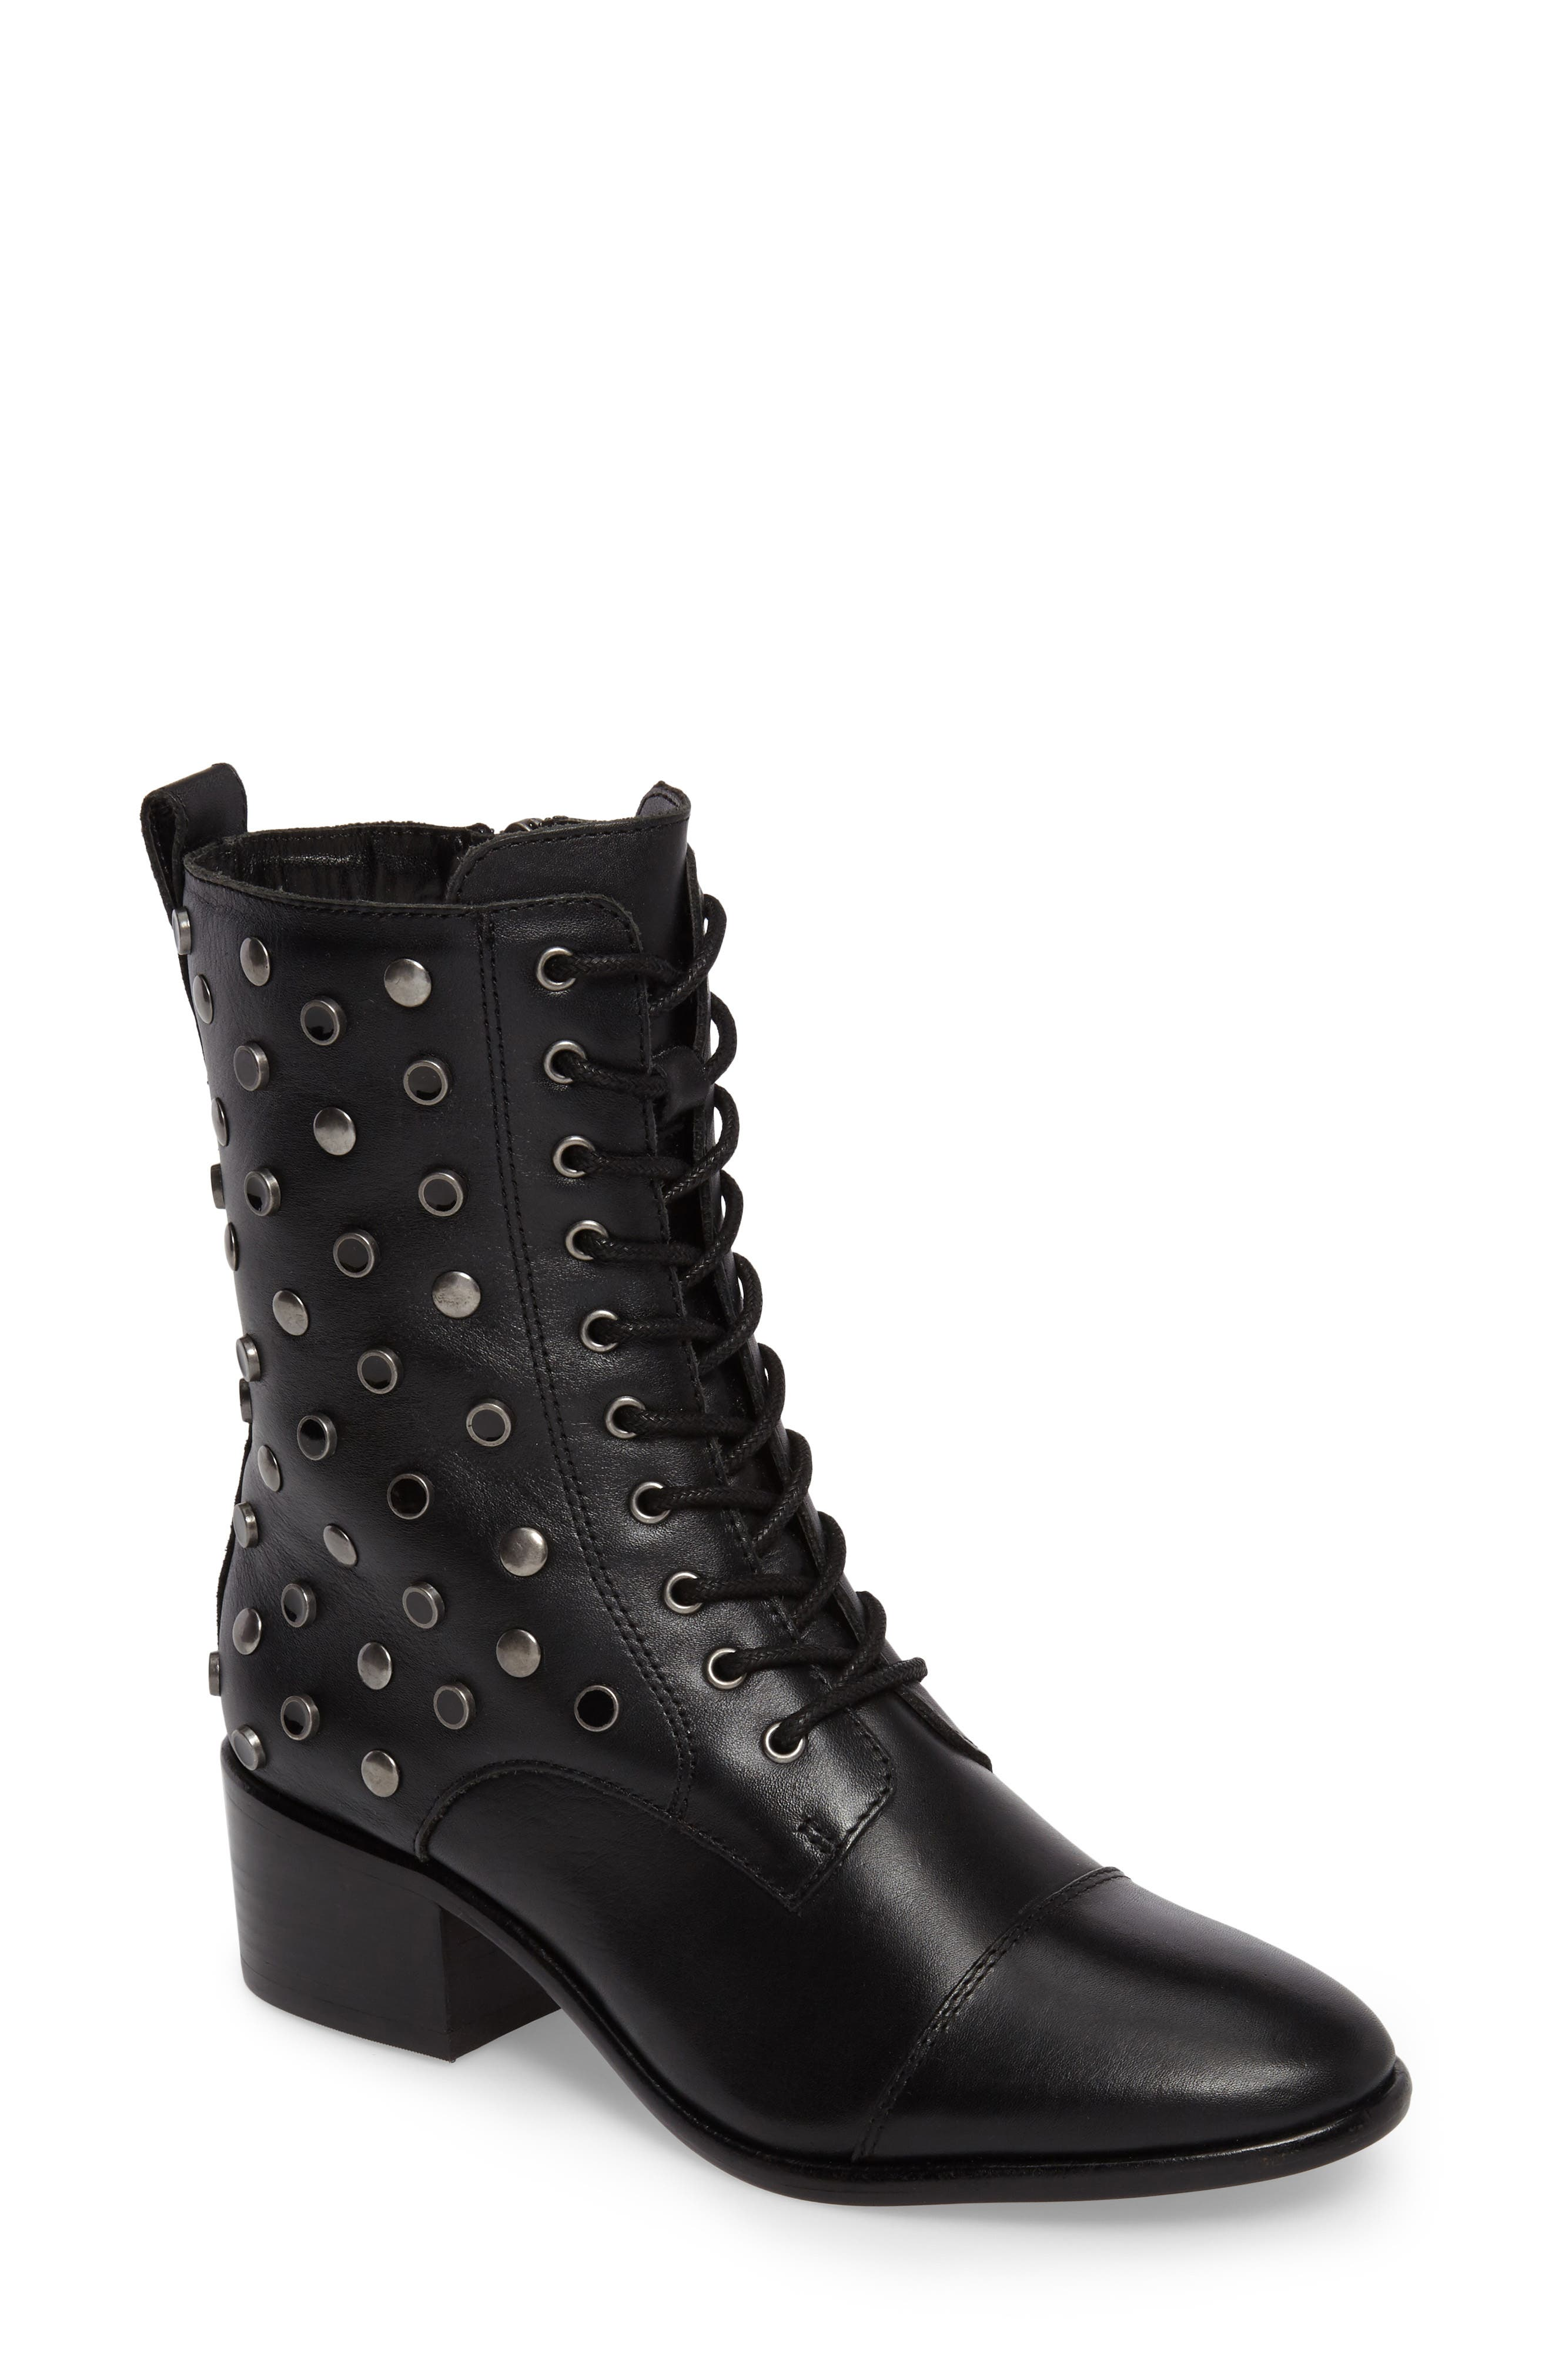 M4D3 Grazie Embellished Water Resistant Boot,                             Main thumbnail 1, color,                             Black Leather